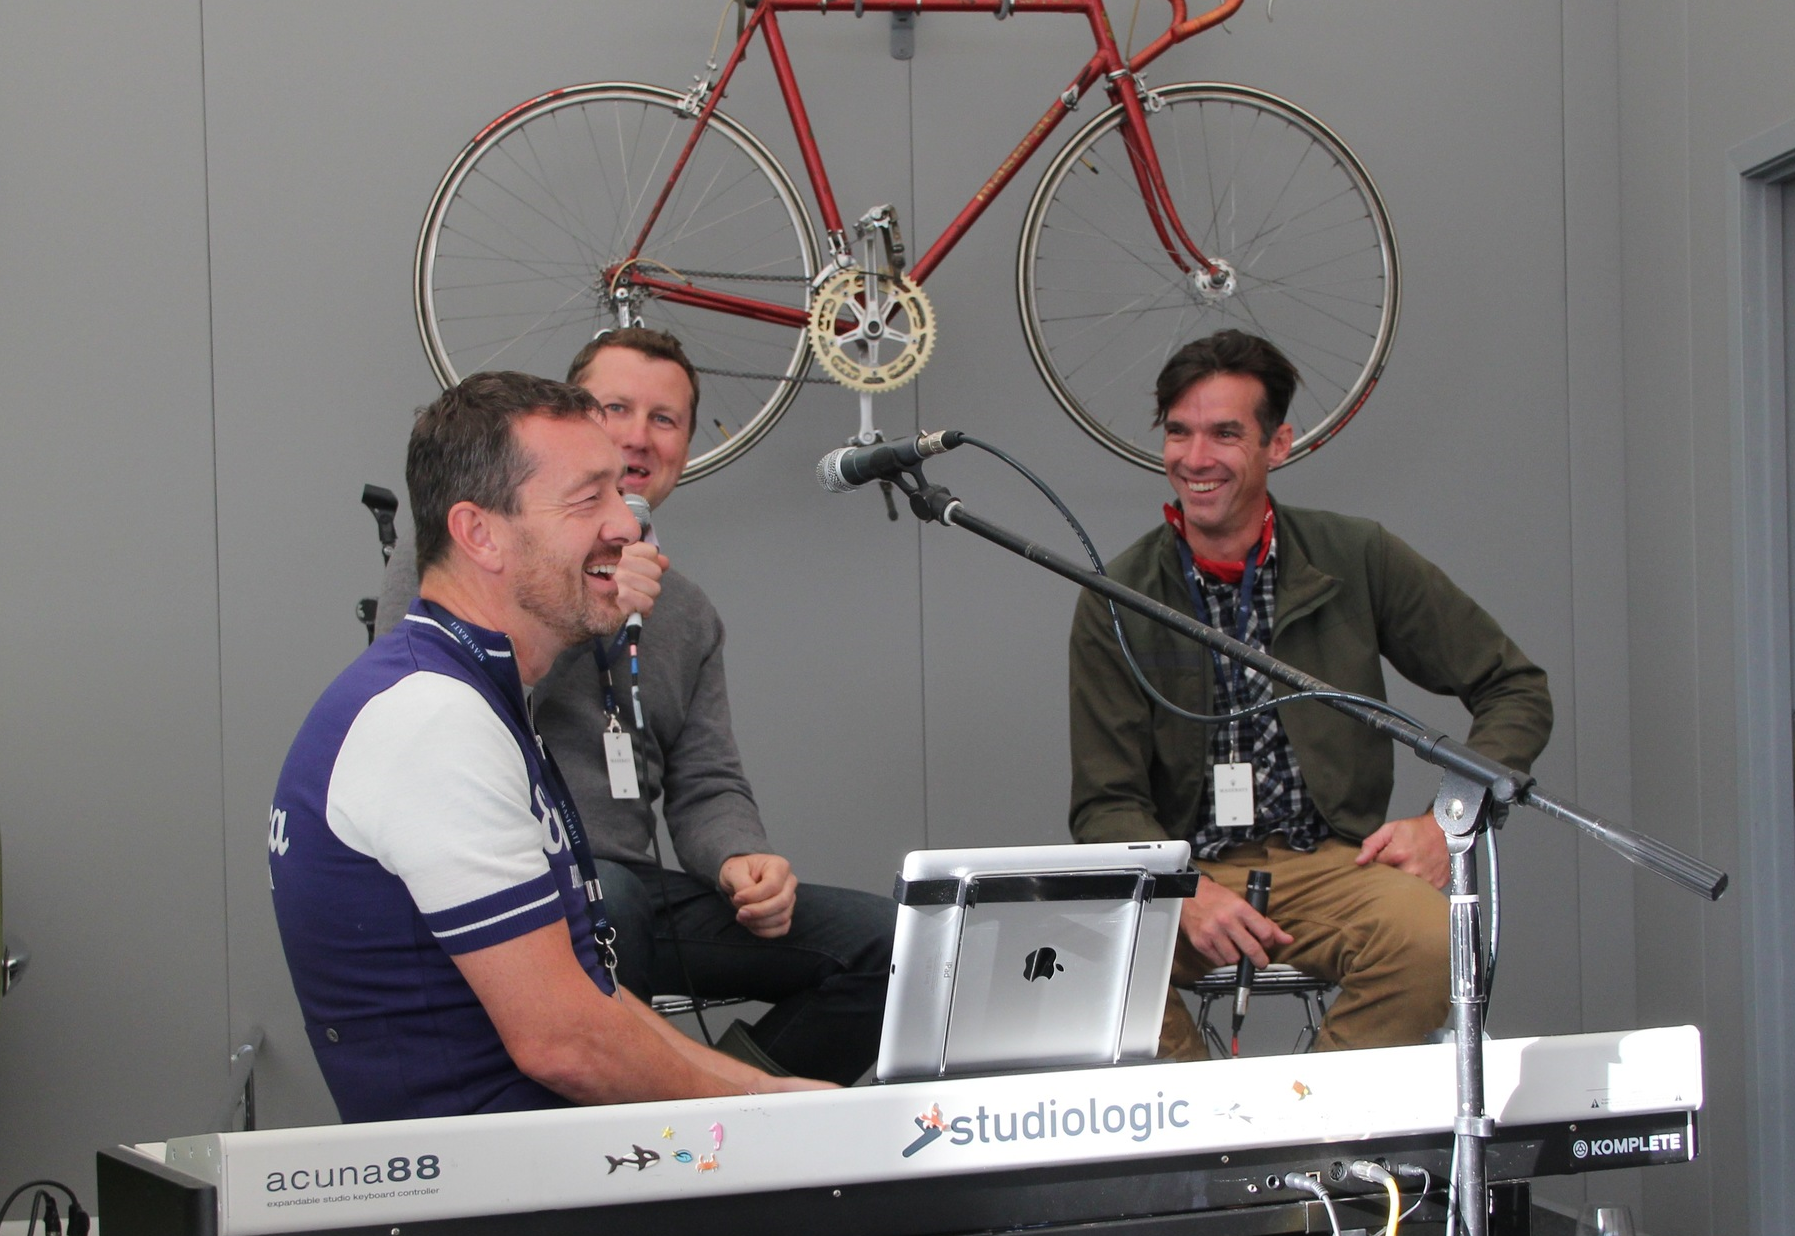 Chris Boardman and David Millar perform a duet at the Eroica Festival 2016